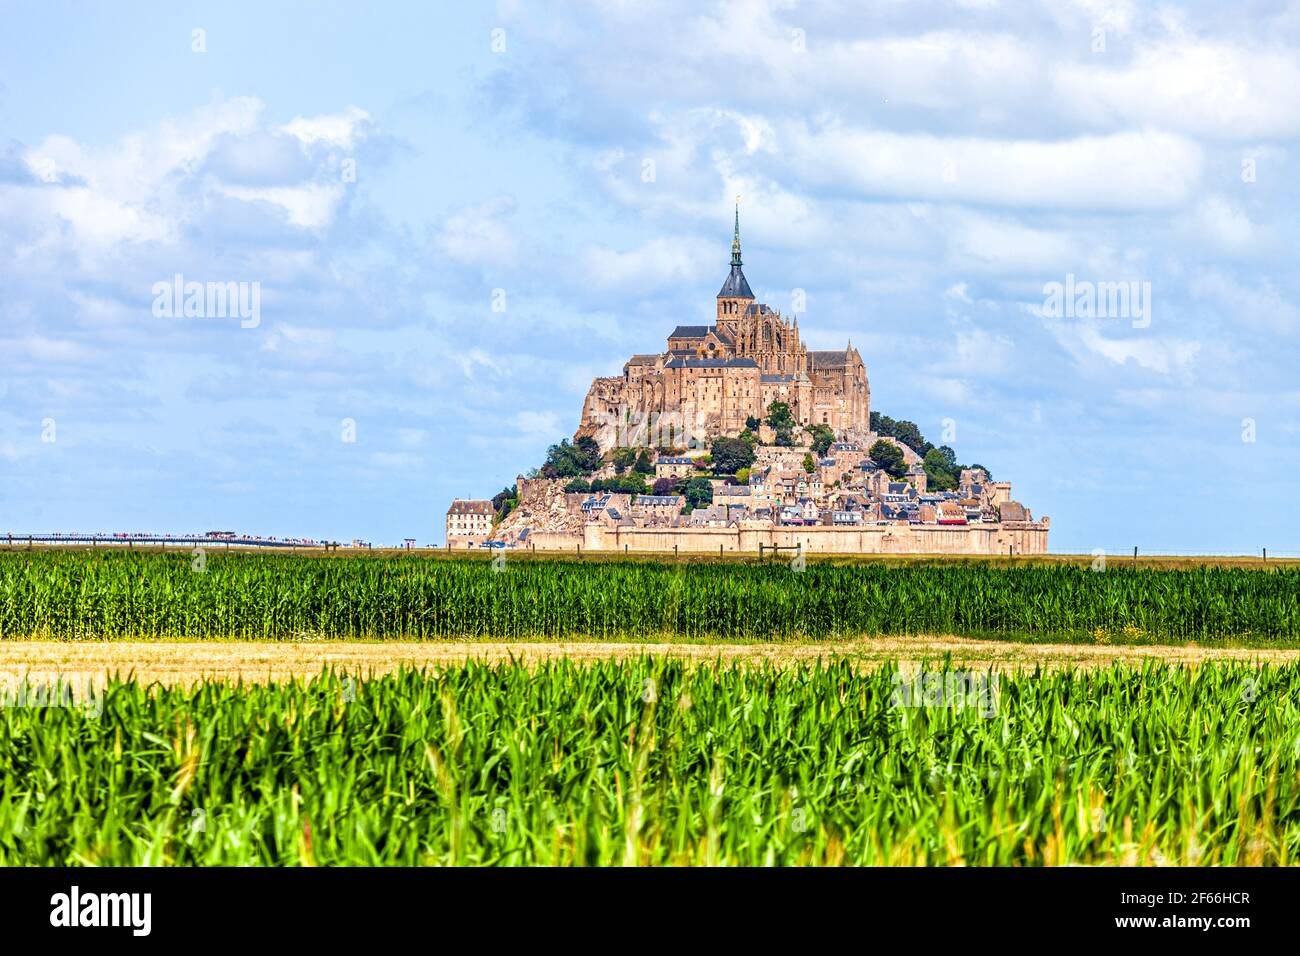 View of famous historic Le Mont Saint-Michel tidal island with green corn fields infront Stock Photo